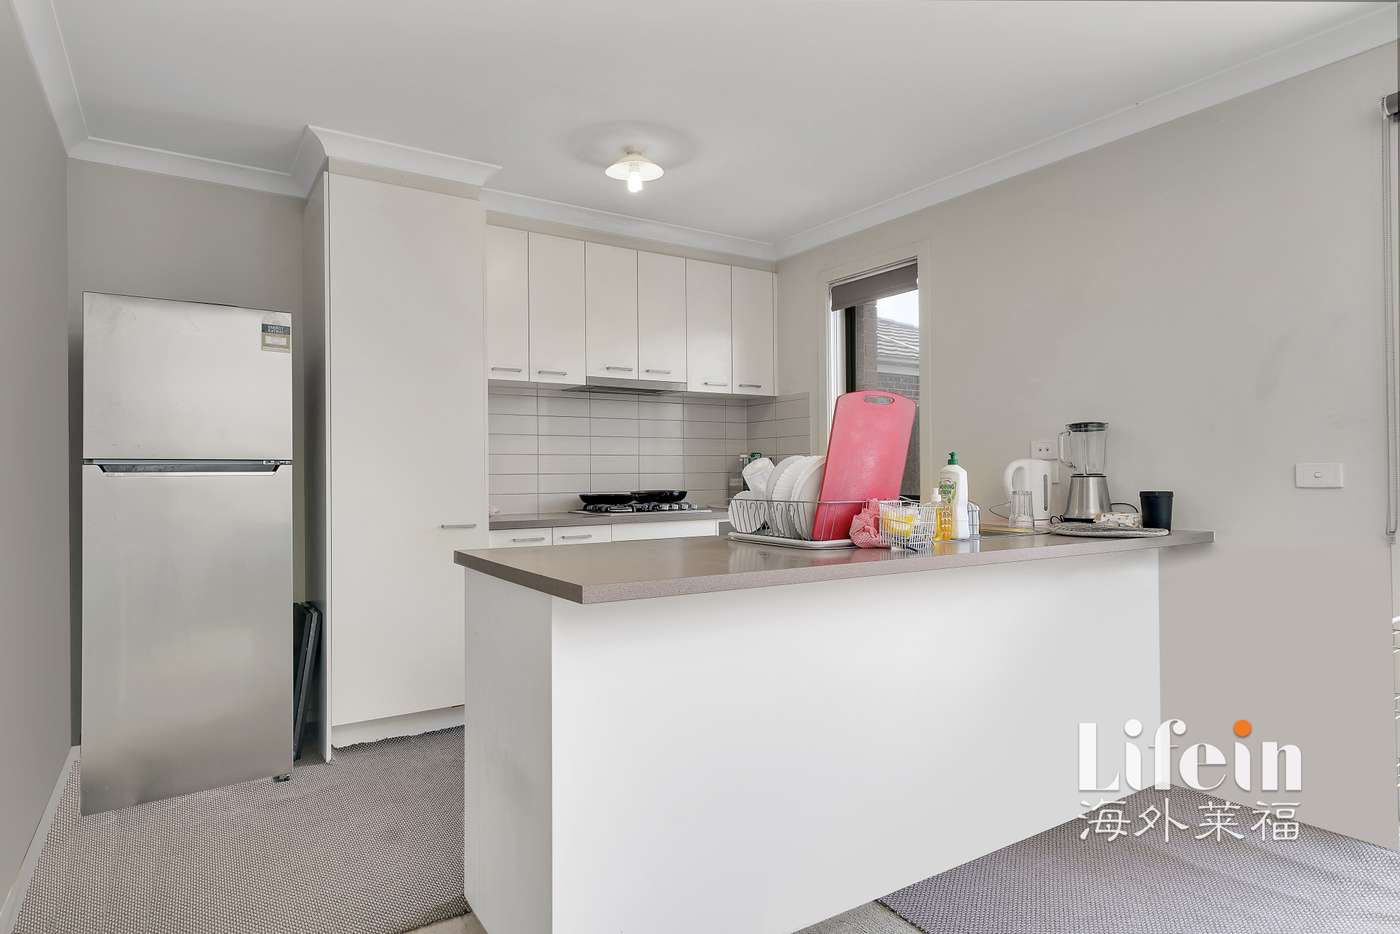 Sixth view of Homely townhouse listing, 44 Kosa Avenue, Sunshine West VIC 3020